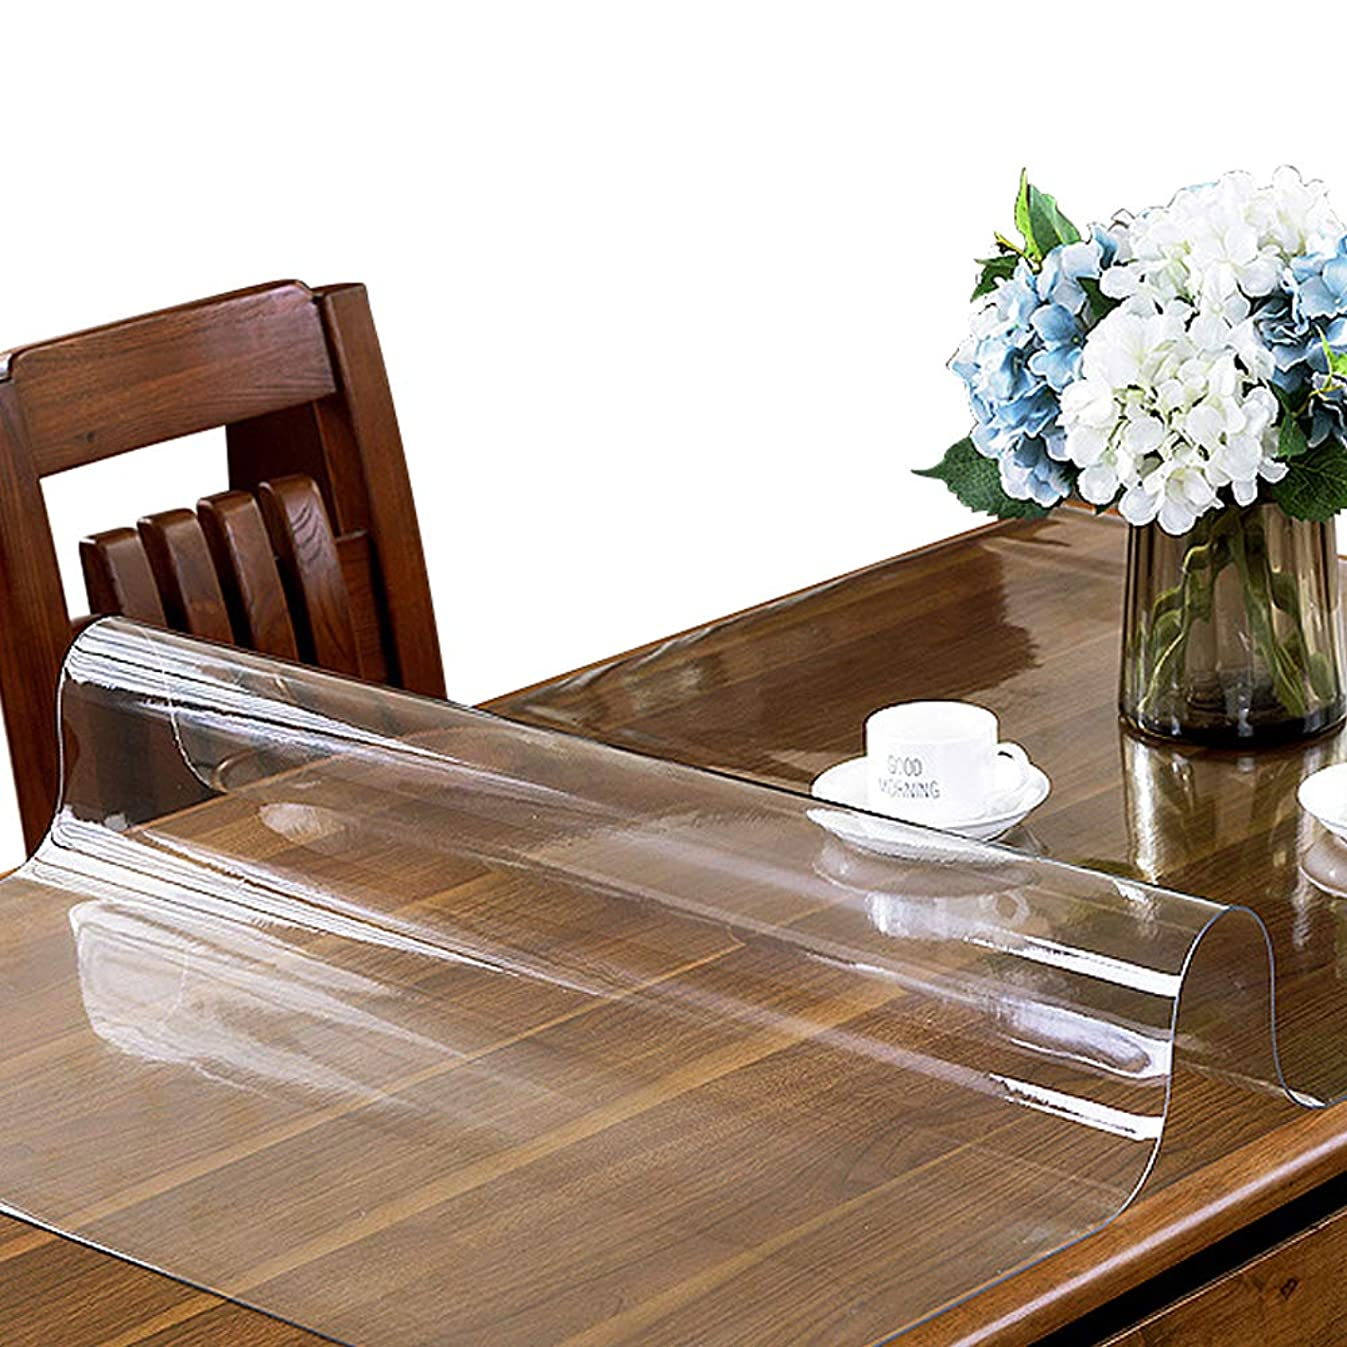 ETECHMART 1.5mm Thick 24 x 48 Inches Clear PVC Table Cover Protector for 4ft Table Non-Slip Waterproof Rectangular Vinyl Desk Pad for Coffee Table, Writing Desk, End Table